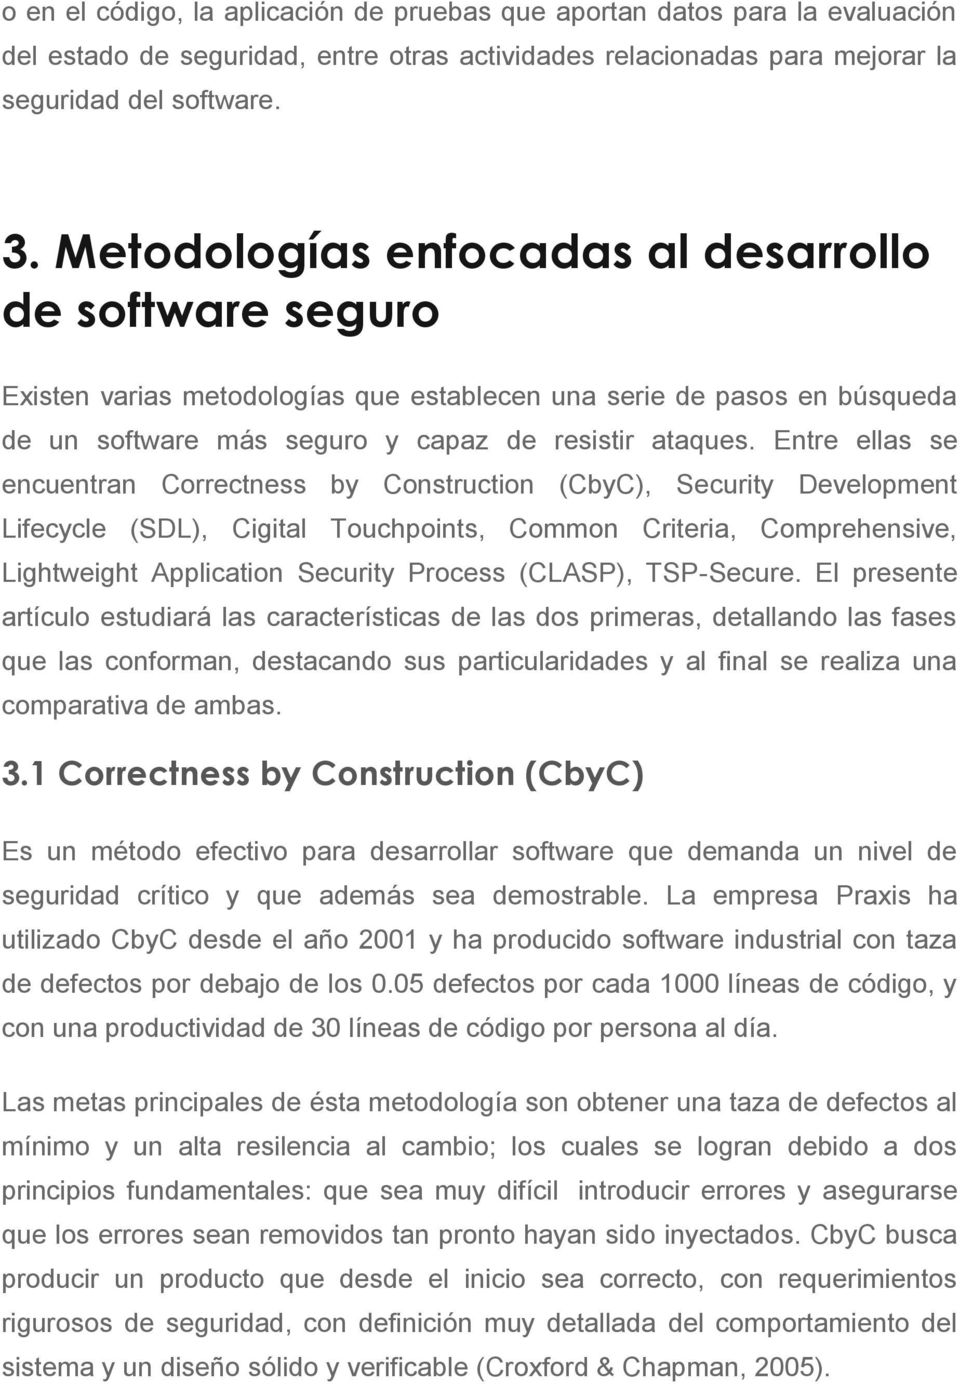 Entre ellas se encuentran Correctness by Construction (CbyC), Security Development Lifecycle (SDL), Cigital Touchpoints, Common Criteria, Comprehensive, Lightweight Application Security Process